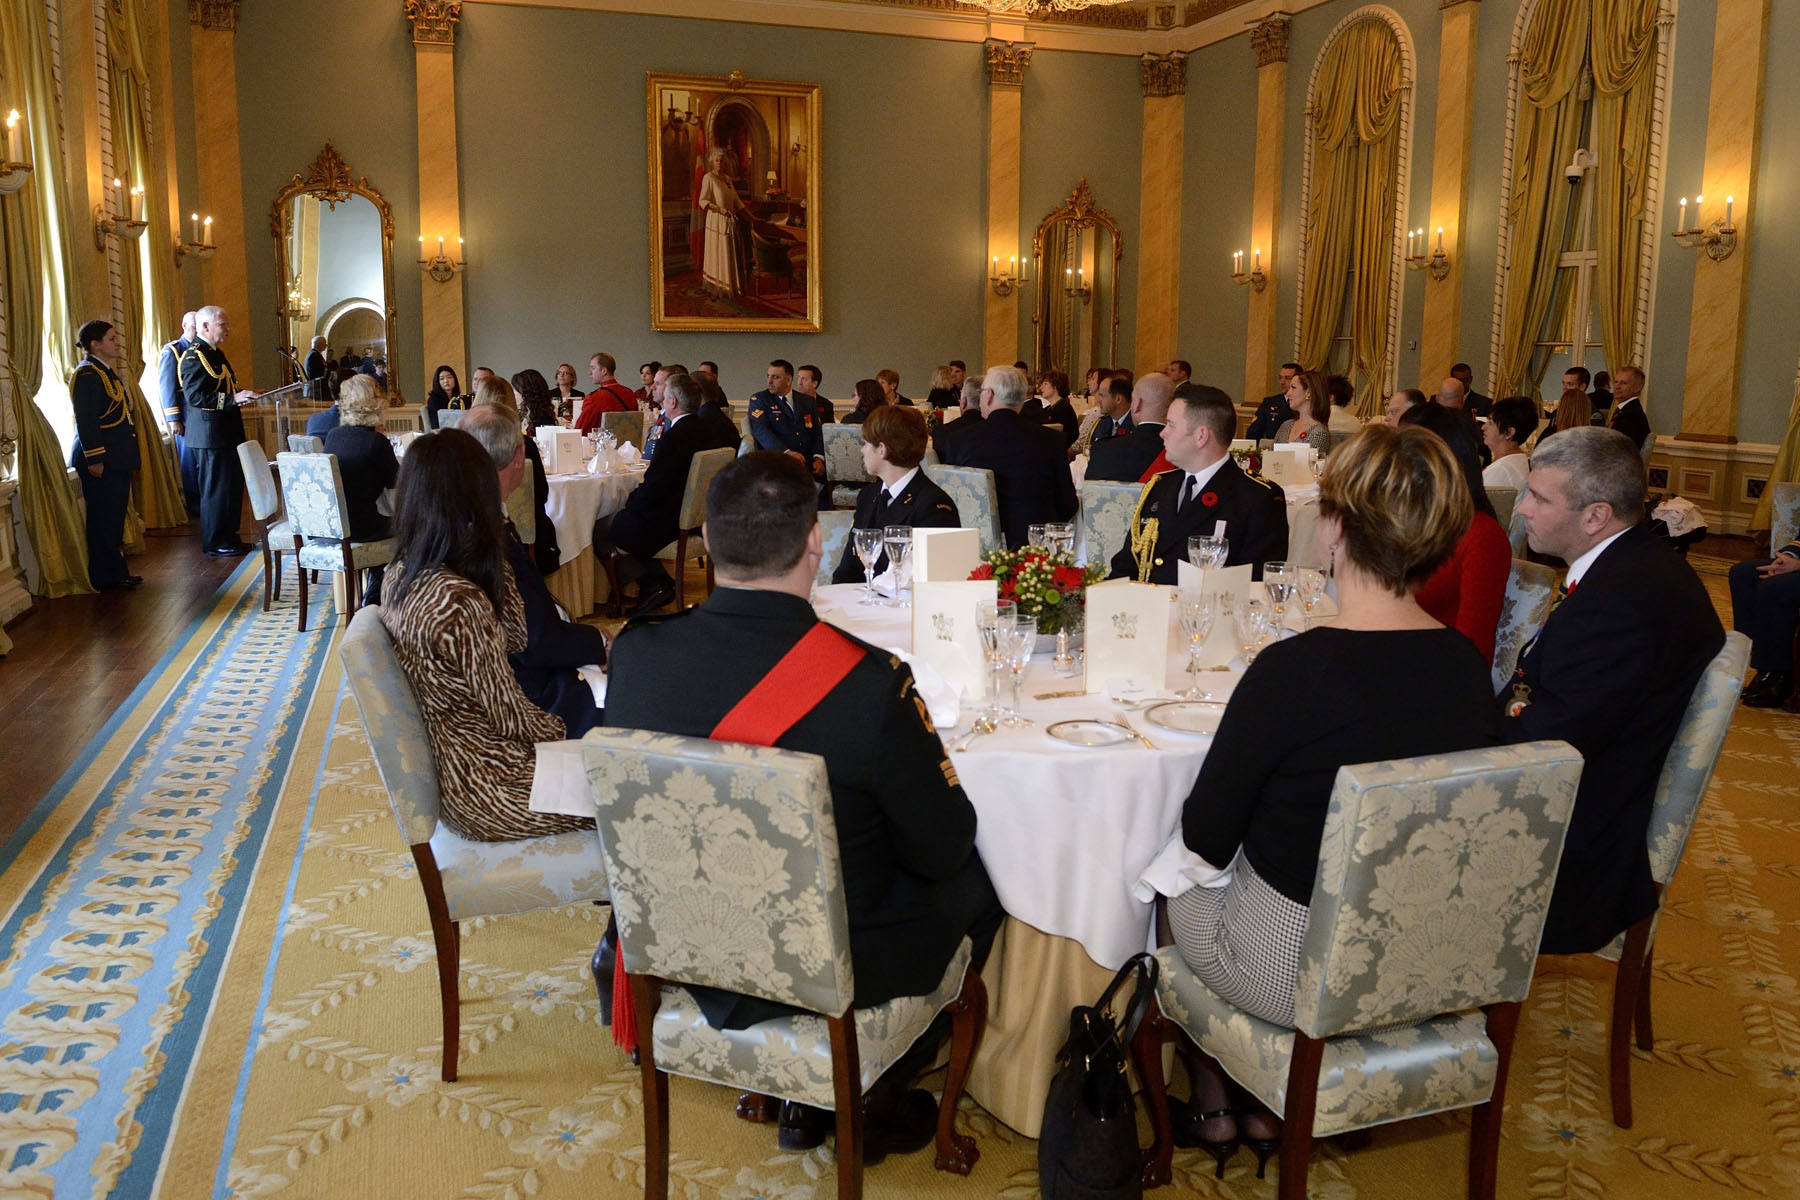 The Governor General delivered remarks during the luncheon.